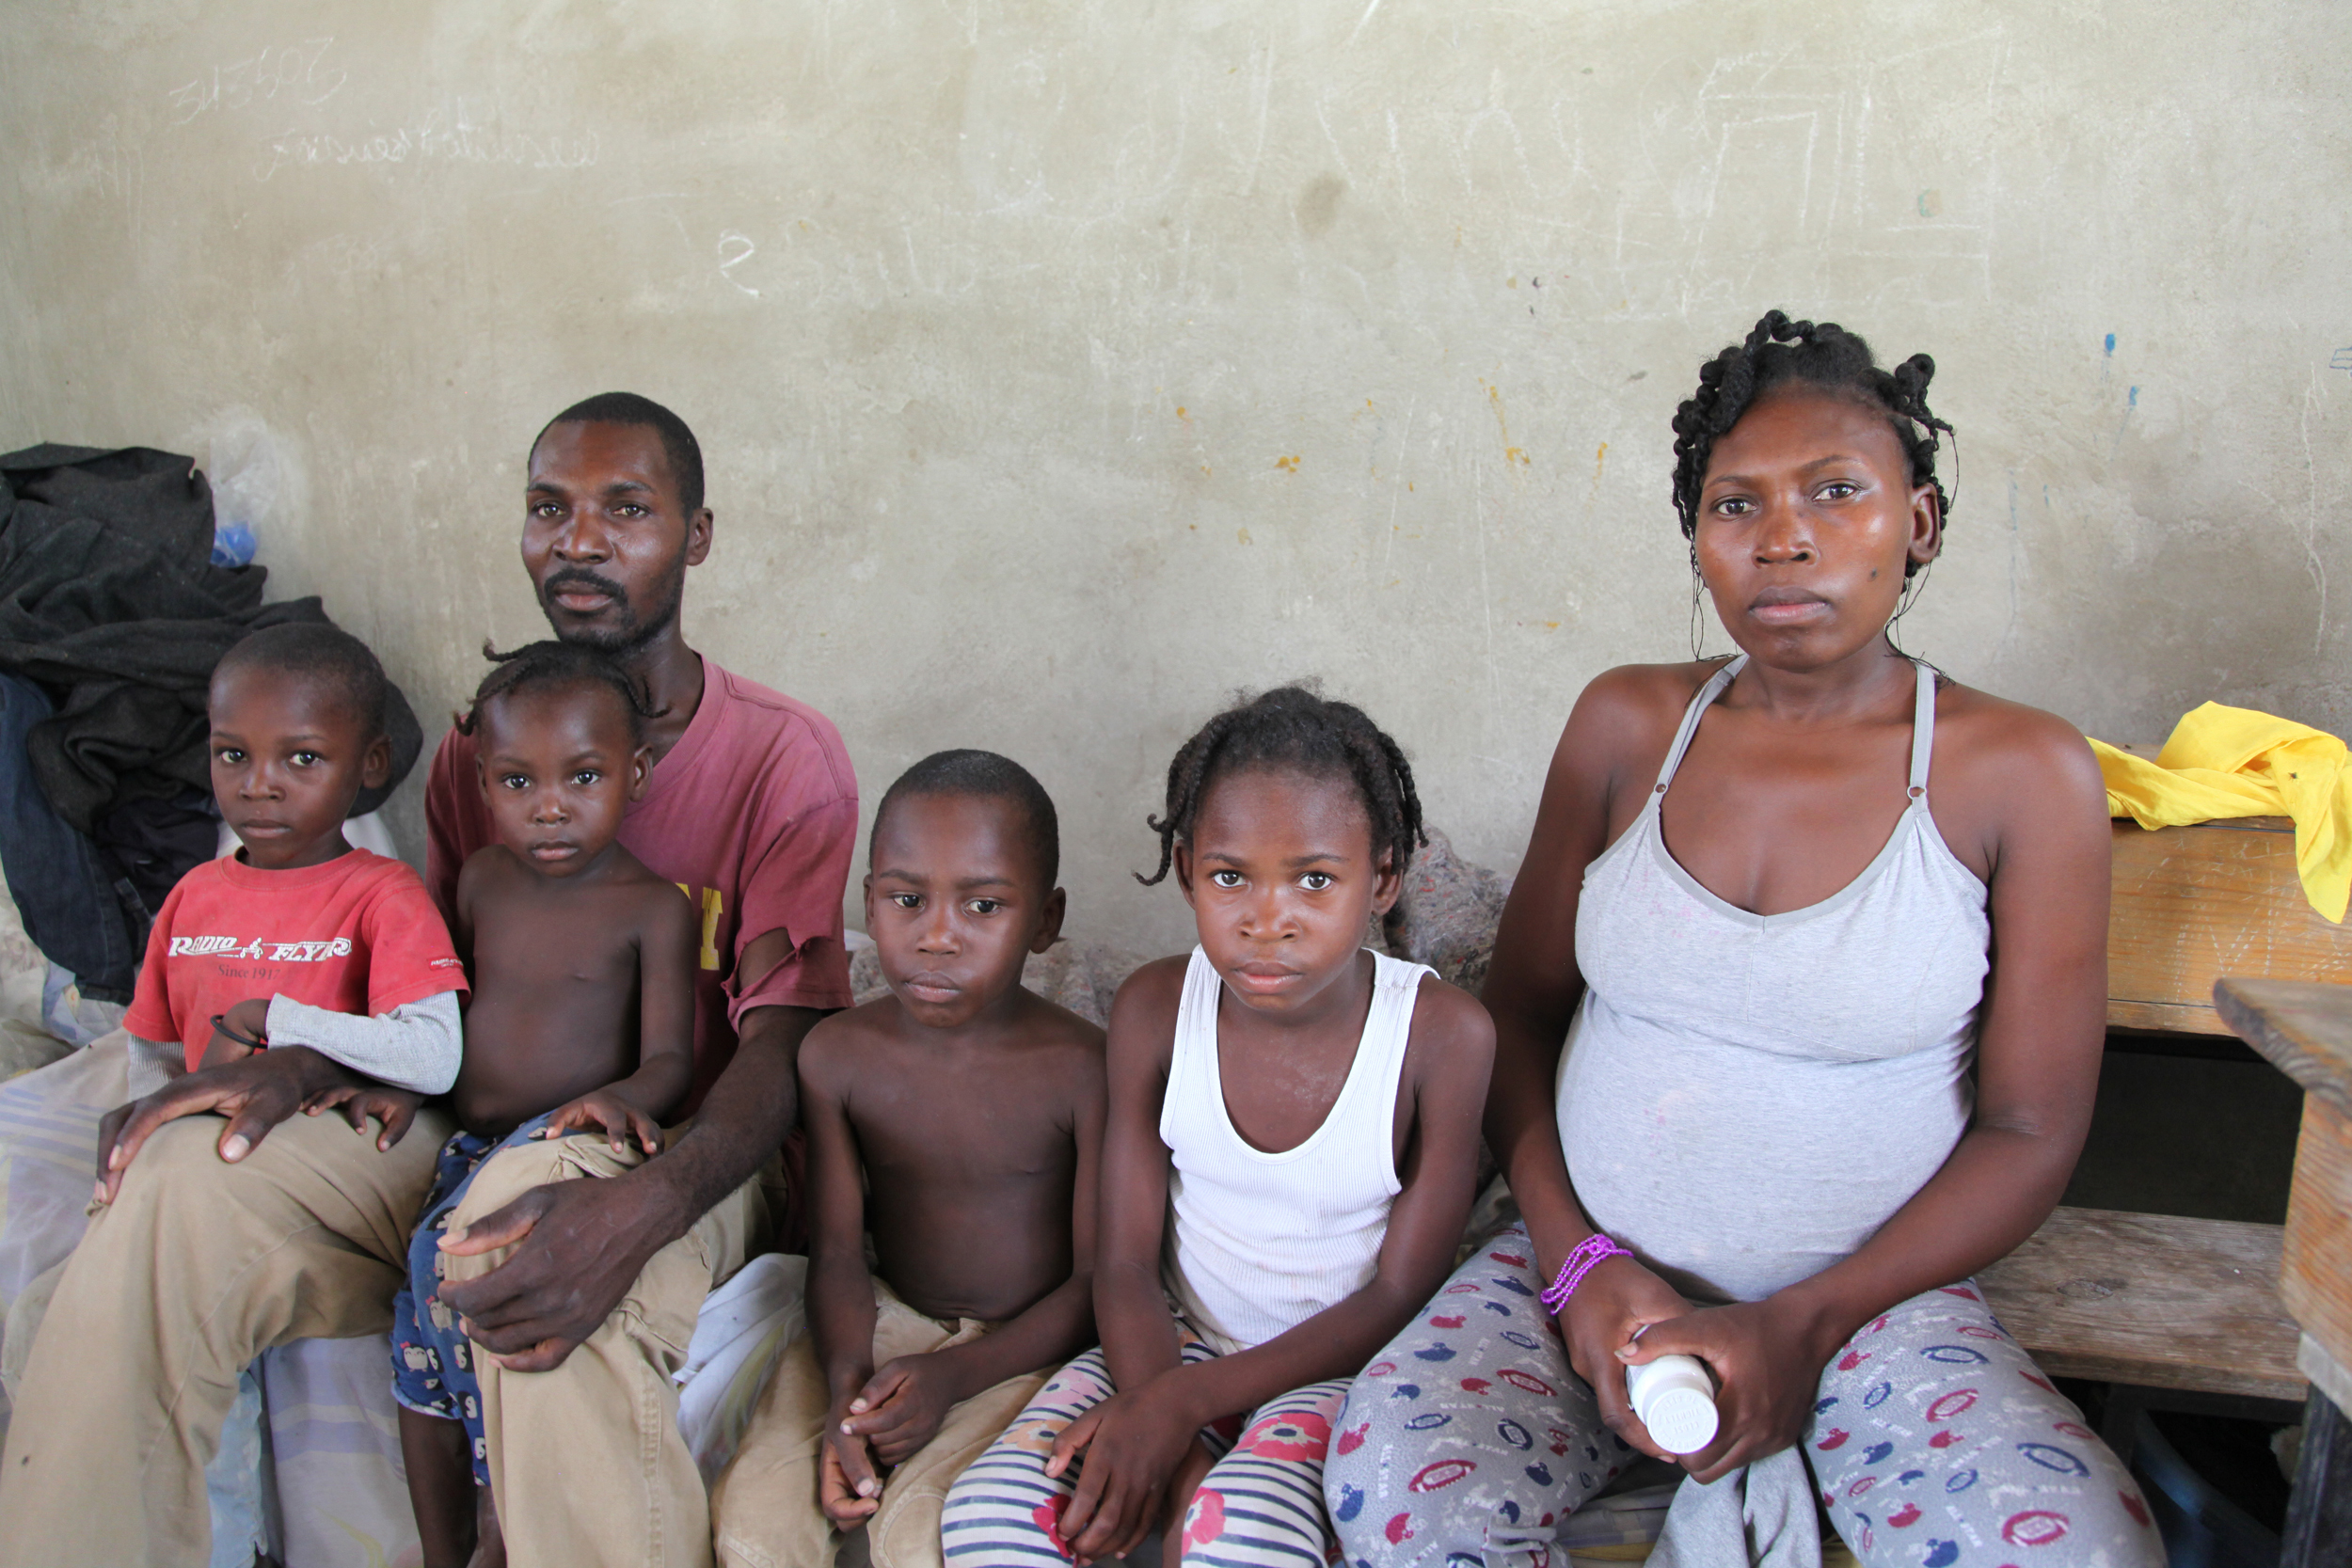 haitian refugees face humiliation and hopelessness